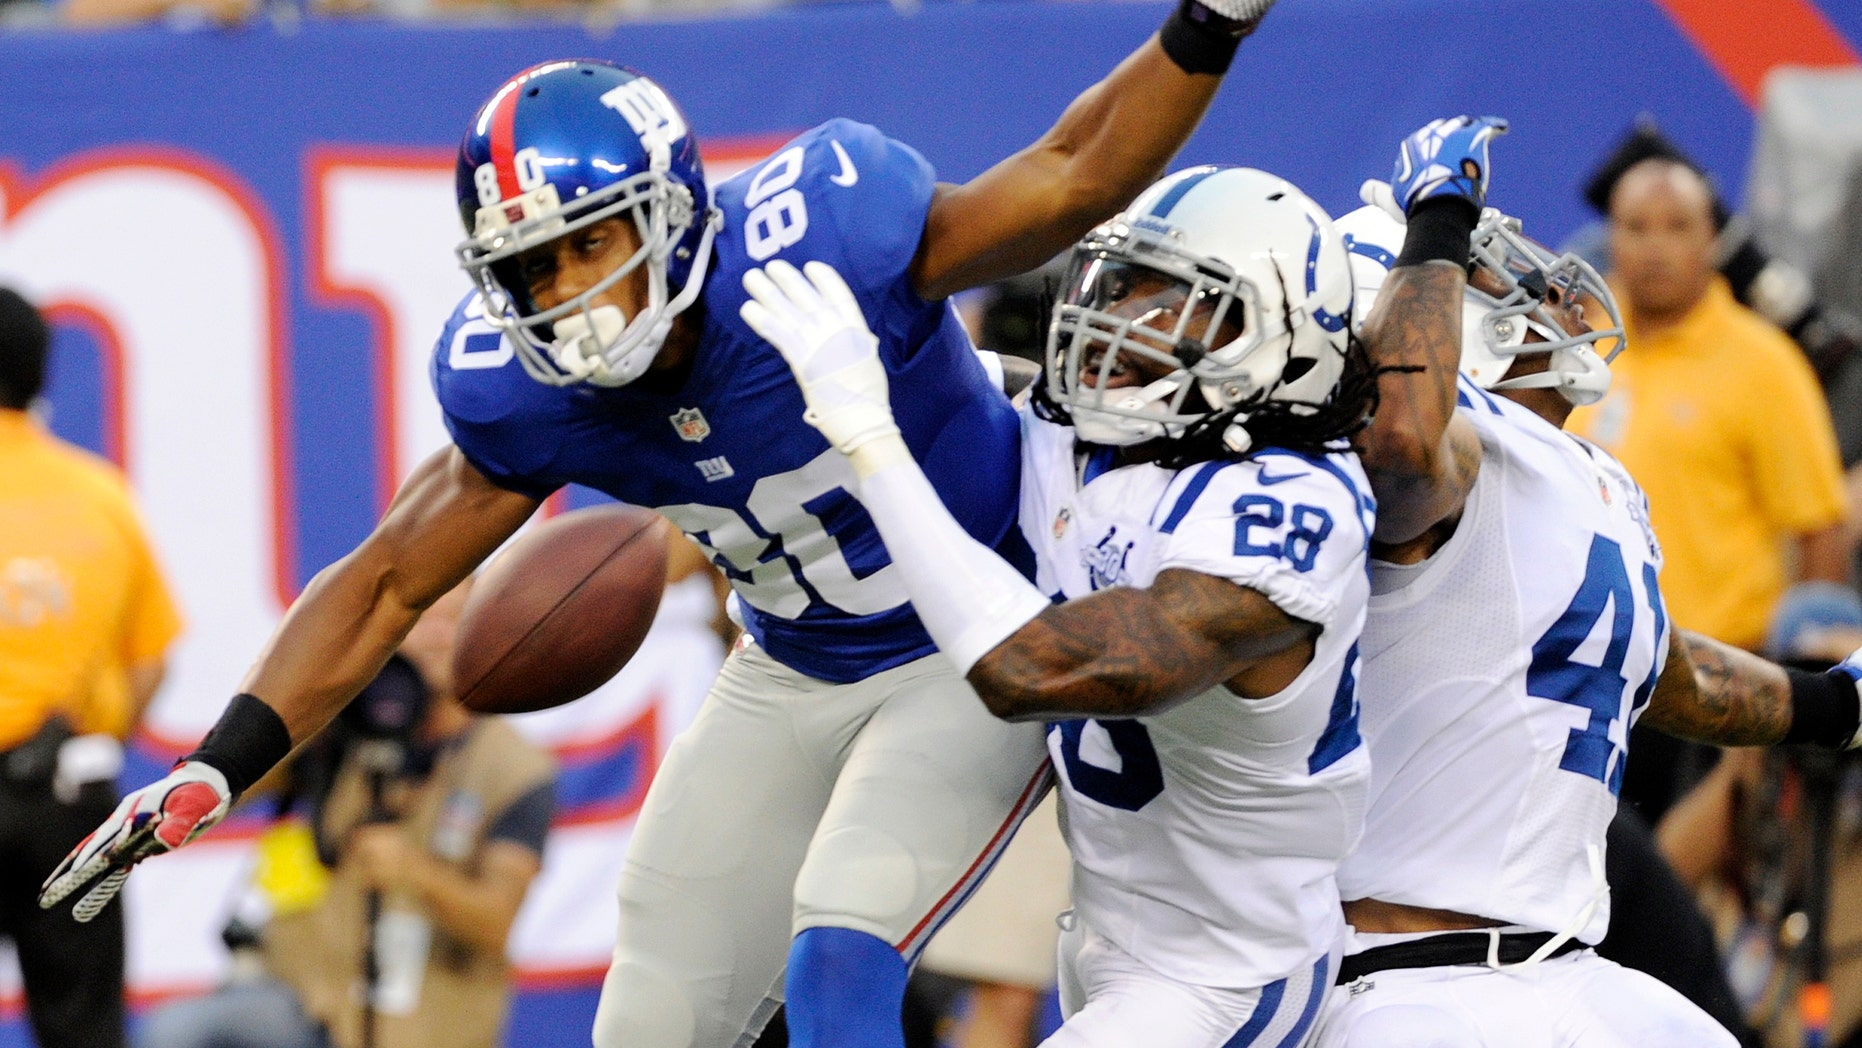 Indianapolis Colts cornerback Greg Toler (28) and Antoine Bethea (41) defend against New York Giants wide receiver Victor Cruz (80) during the first half of an NFL preseason football game on Sunday, Aug. 18, 2013, in East Rutherford, N.J. Pass interference was called on the play. (AP Photo/Bill Kostroun)